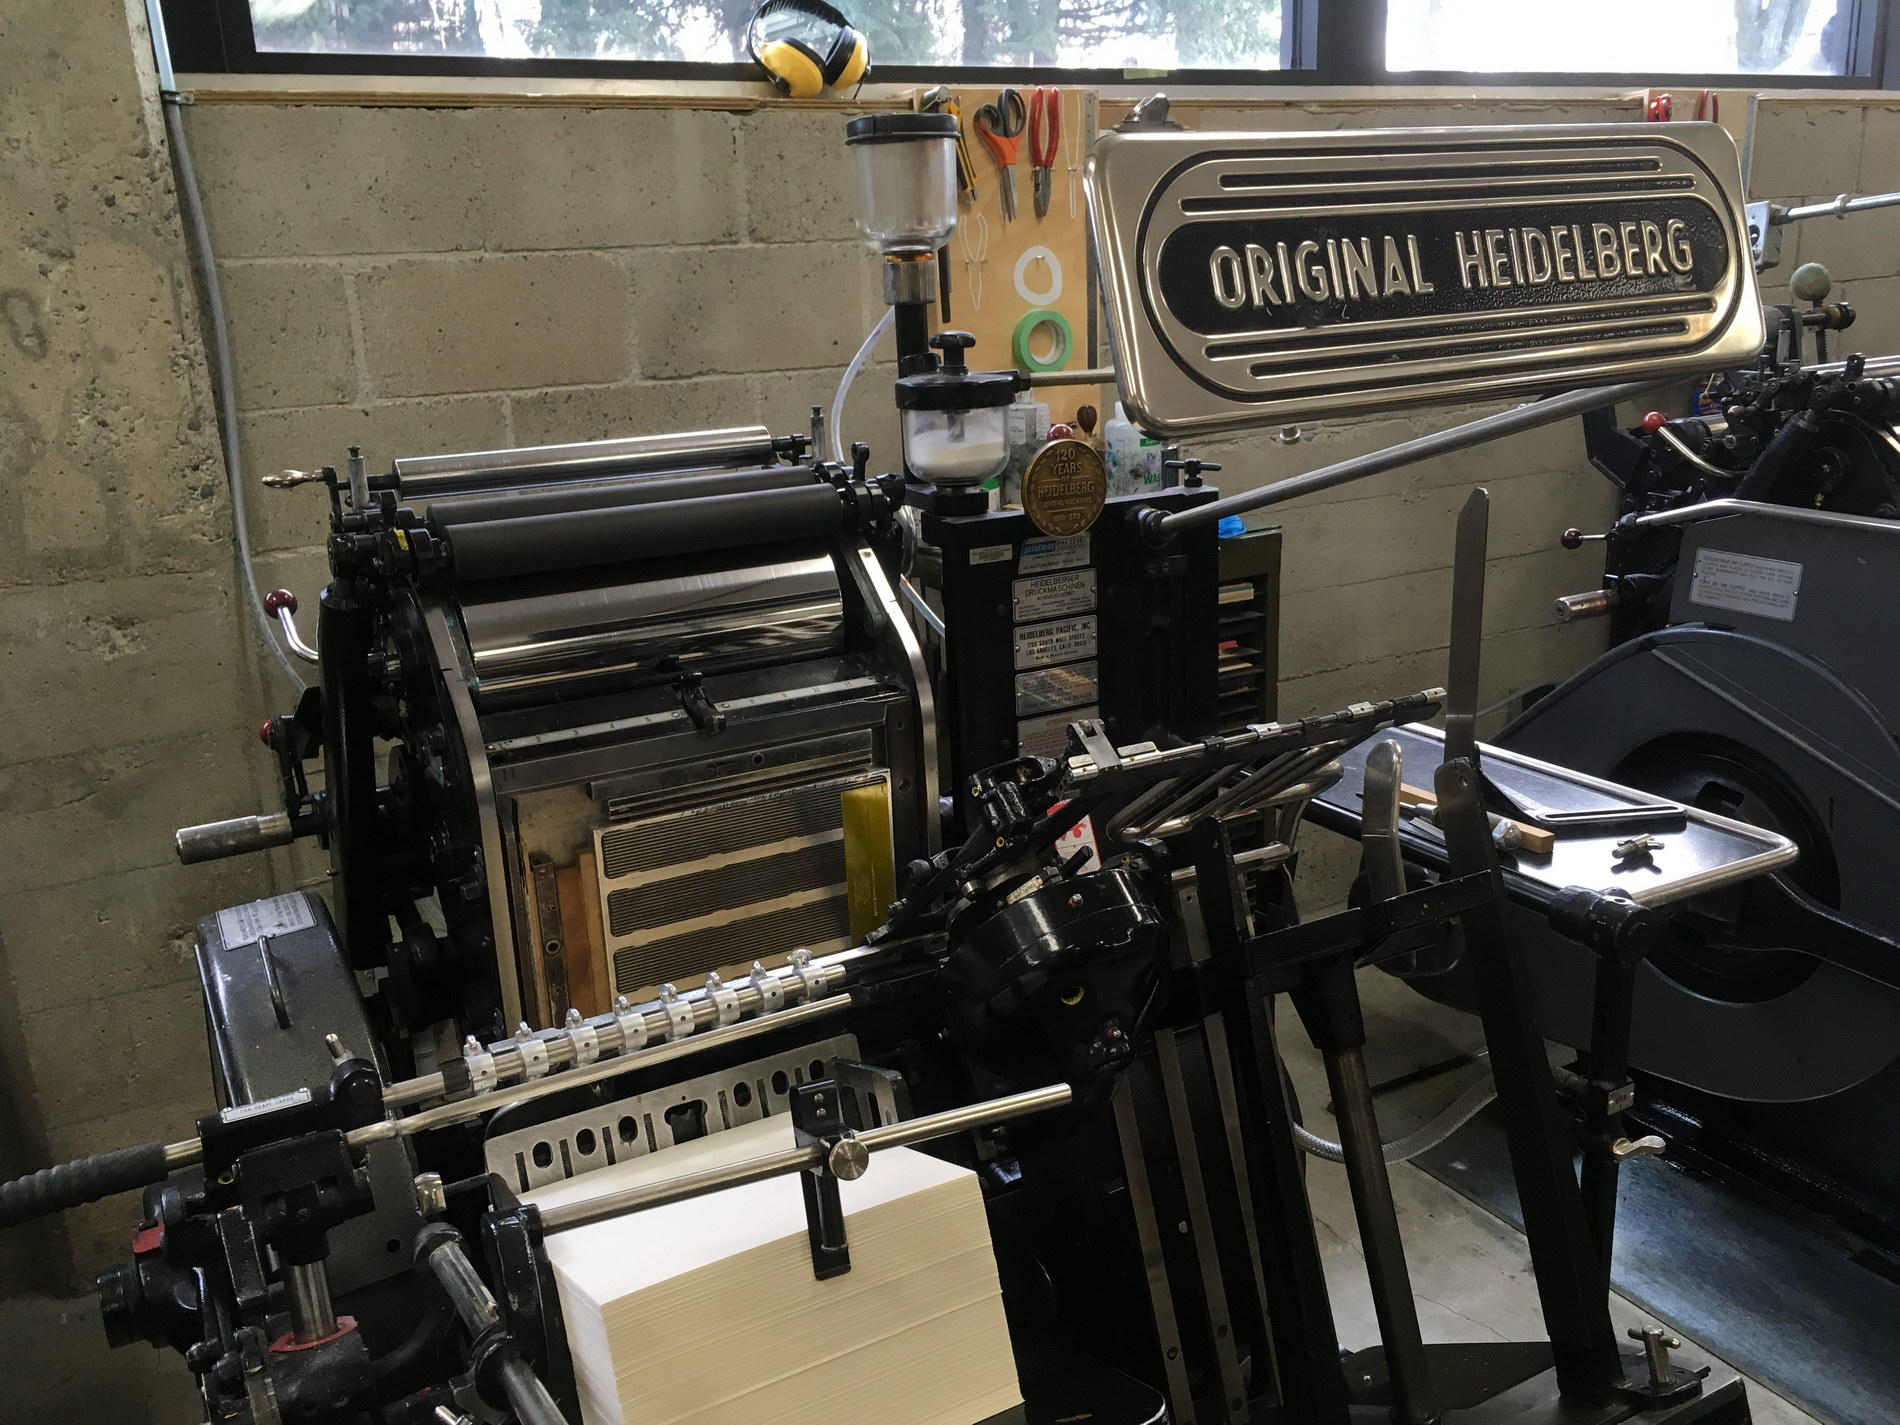 The Heidelberg windmill press is one of many presses at Porchlight Press